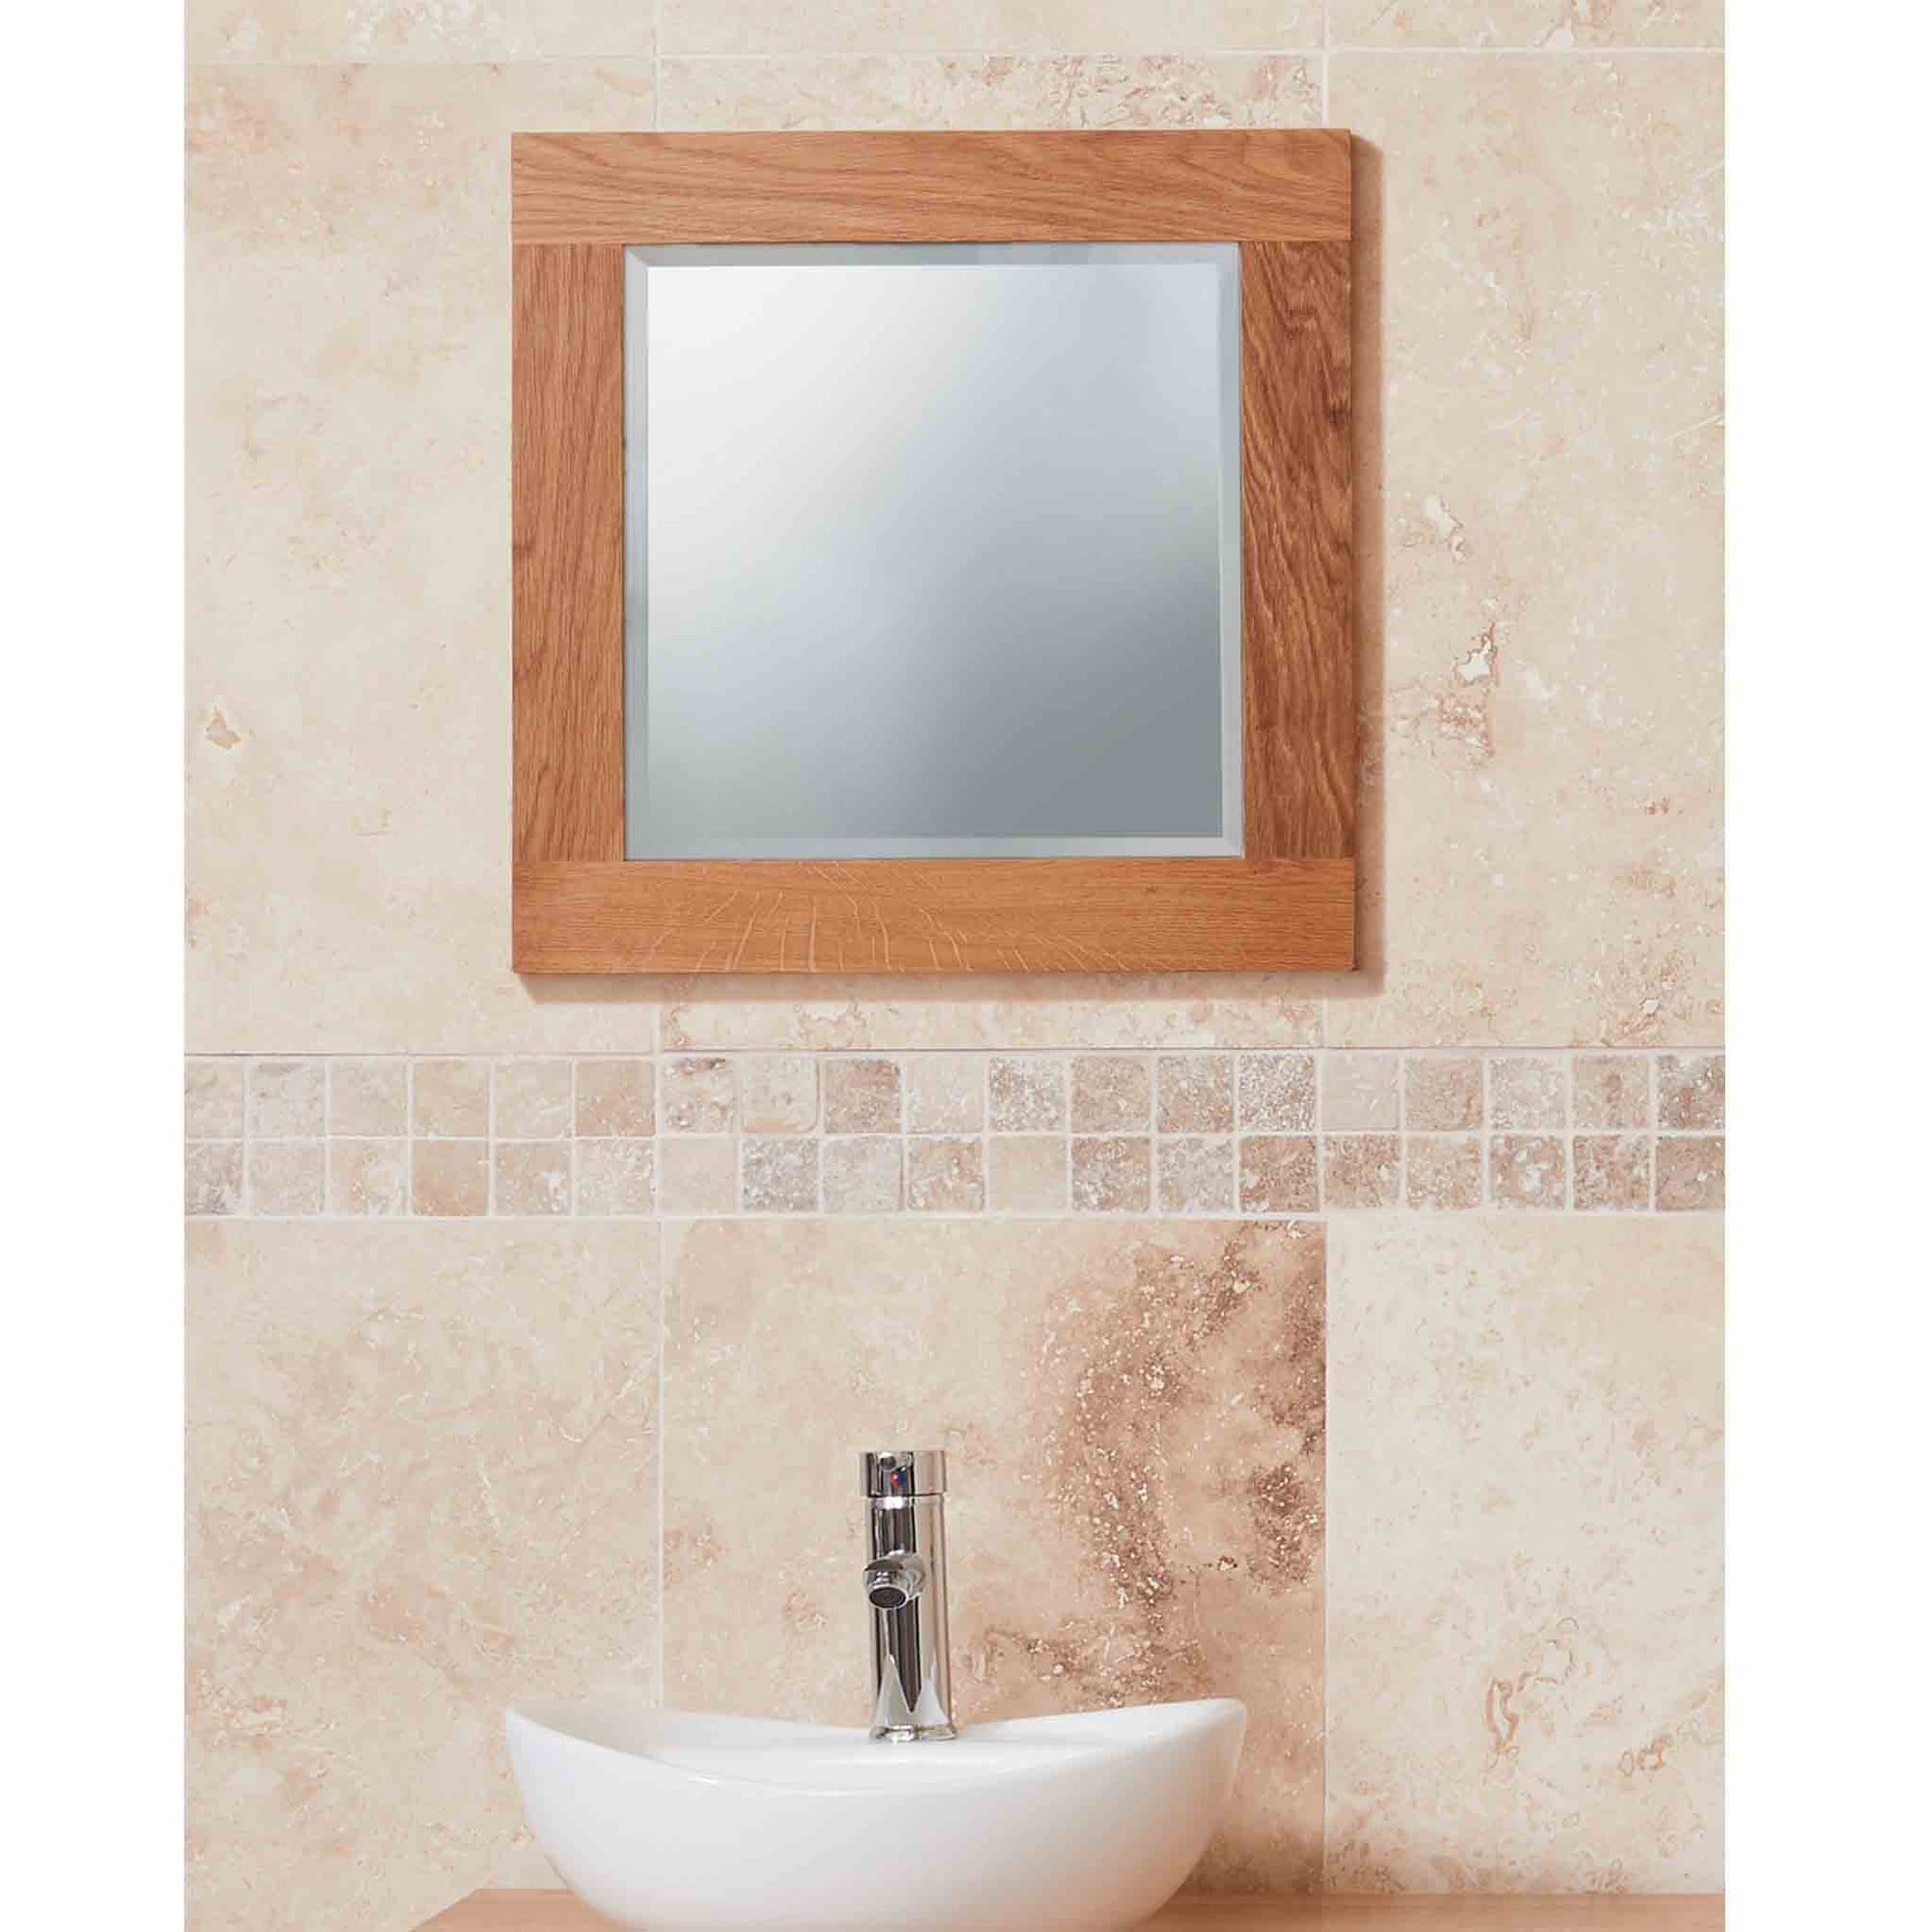 Mobel Oak Bathroom Small Wall Mounted Square Mirror 645x 45cm